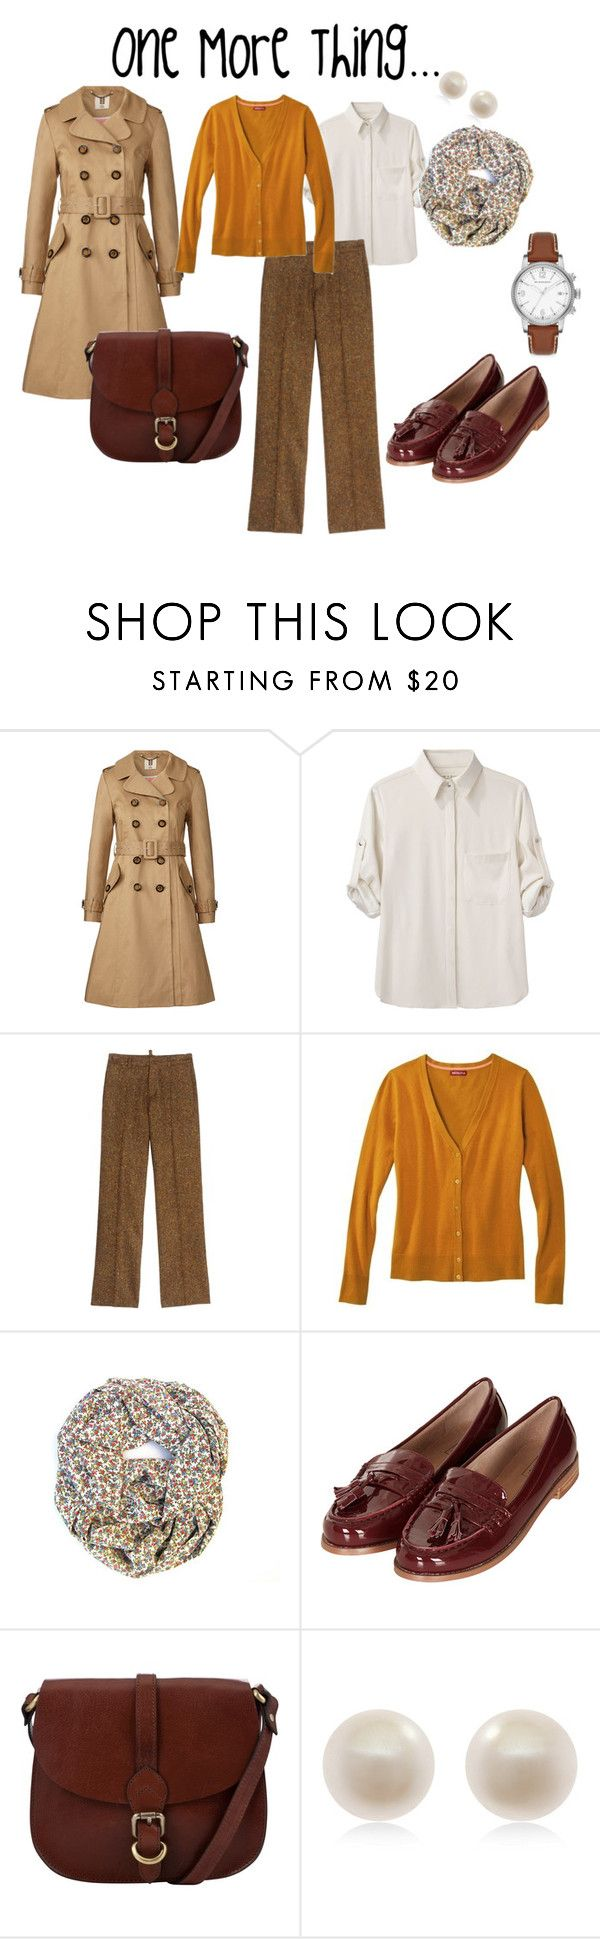 """Mrs. Columbo"" by mamaskip ❤ liked on Polyvore featuring Orla Kiely, rag & bone, Dsquared2, Topshop, John Lewis, Links of London, Burberry, women's clothing, women and female"